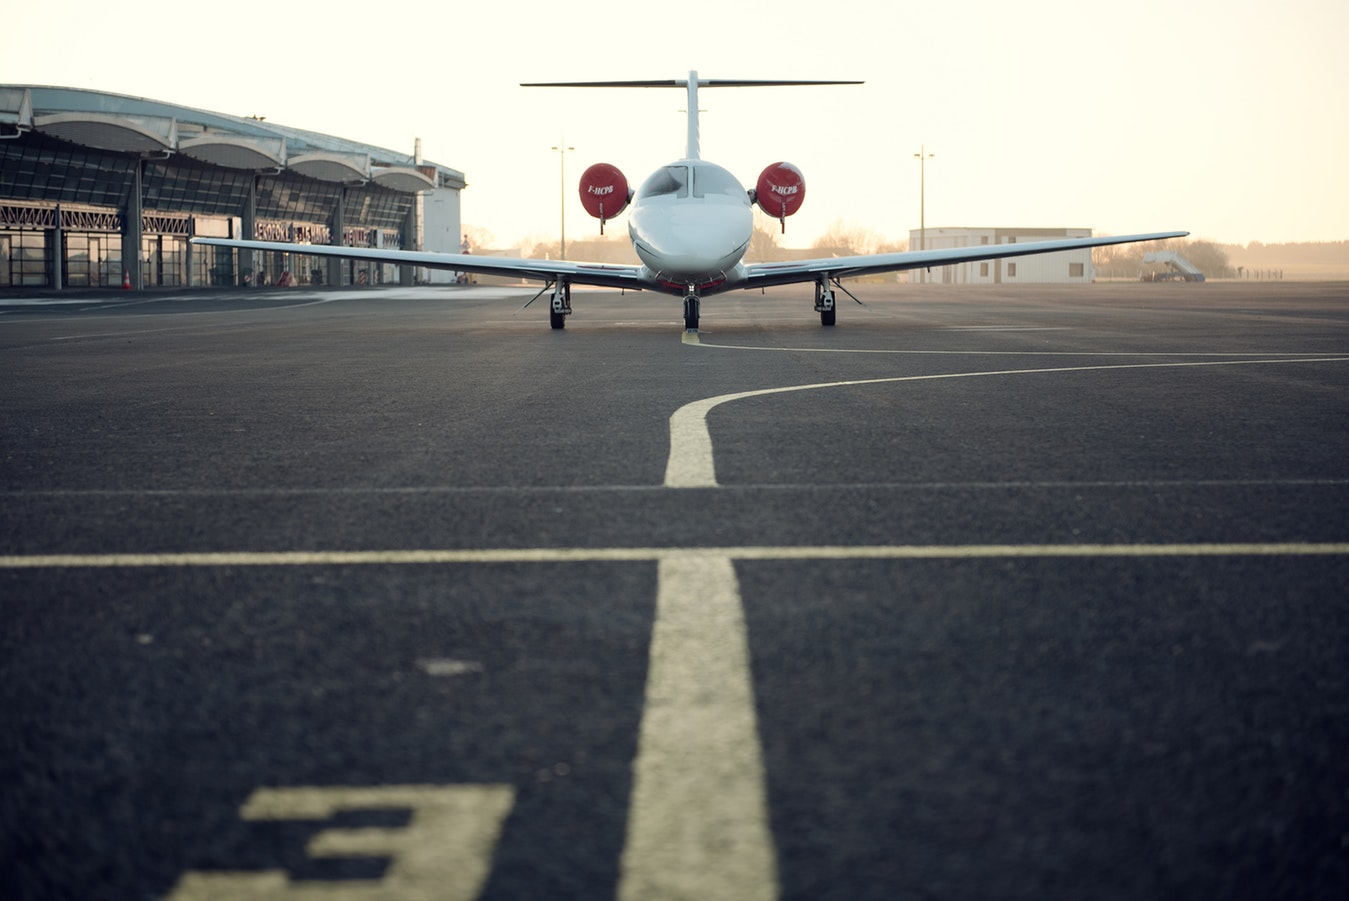 The possibilities of Superannuation - Jet Plane